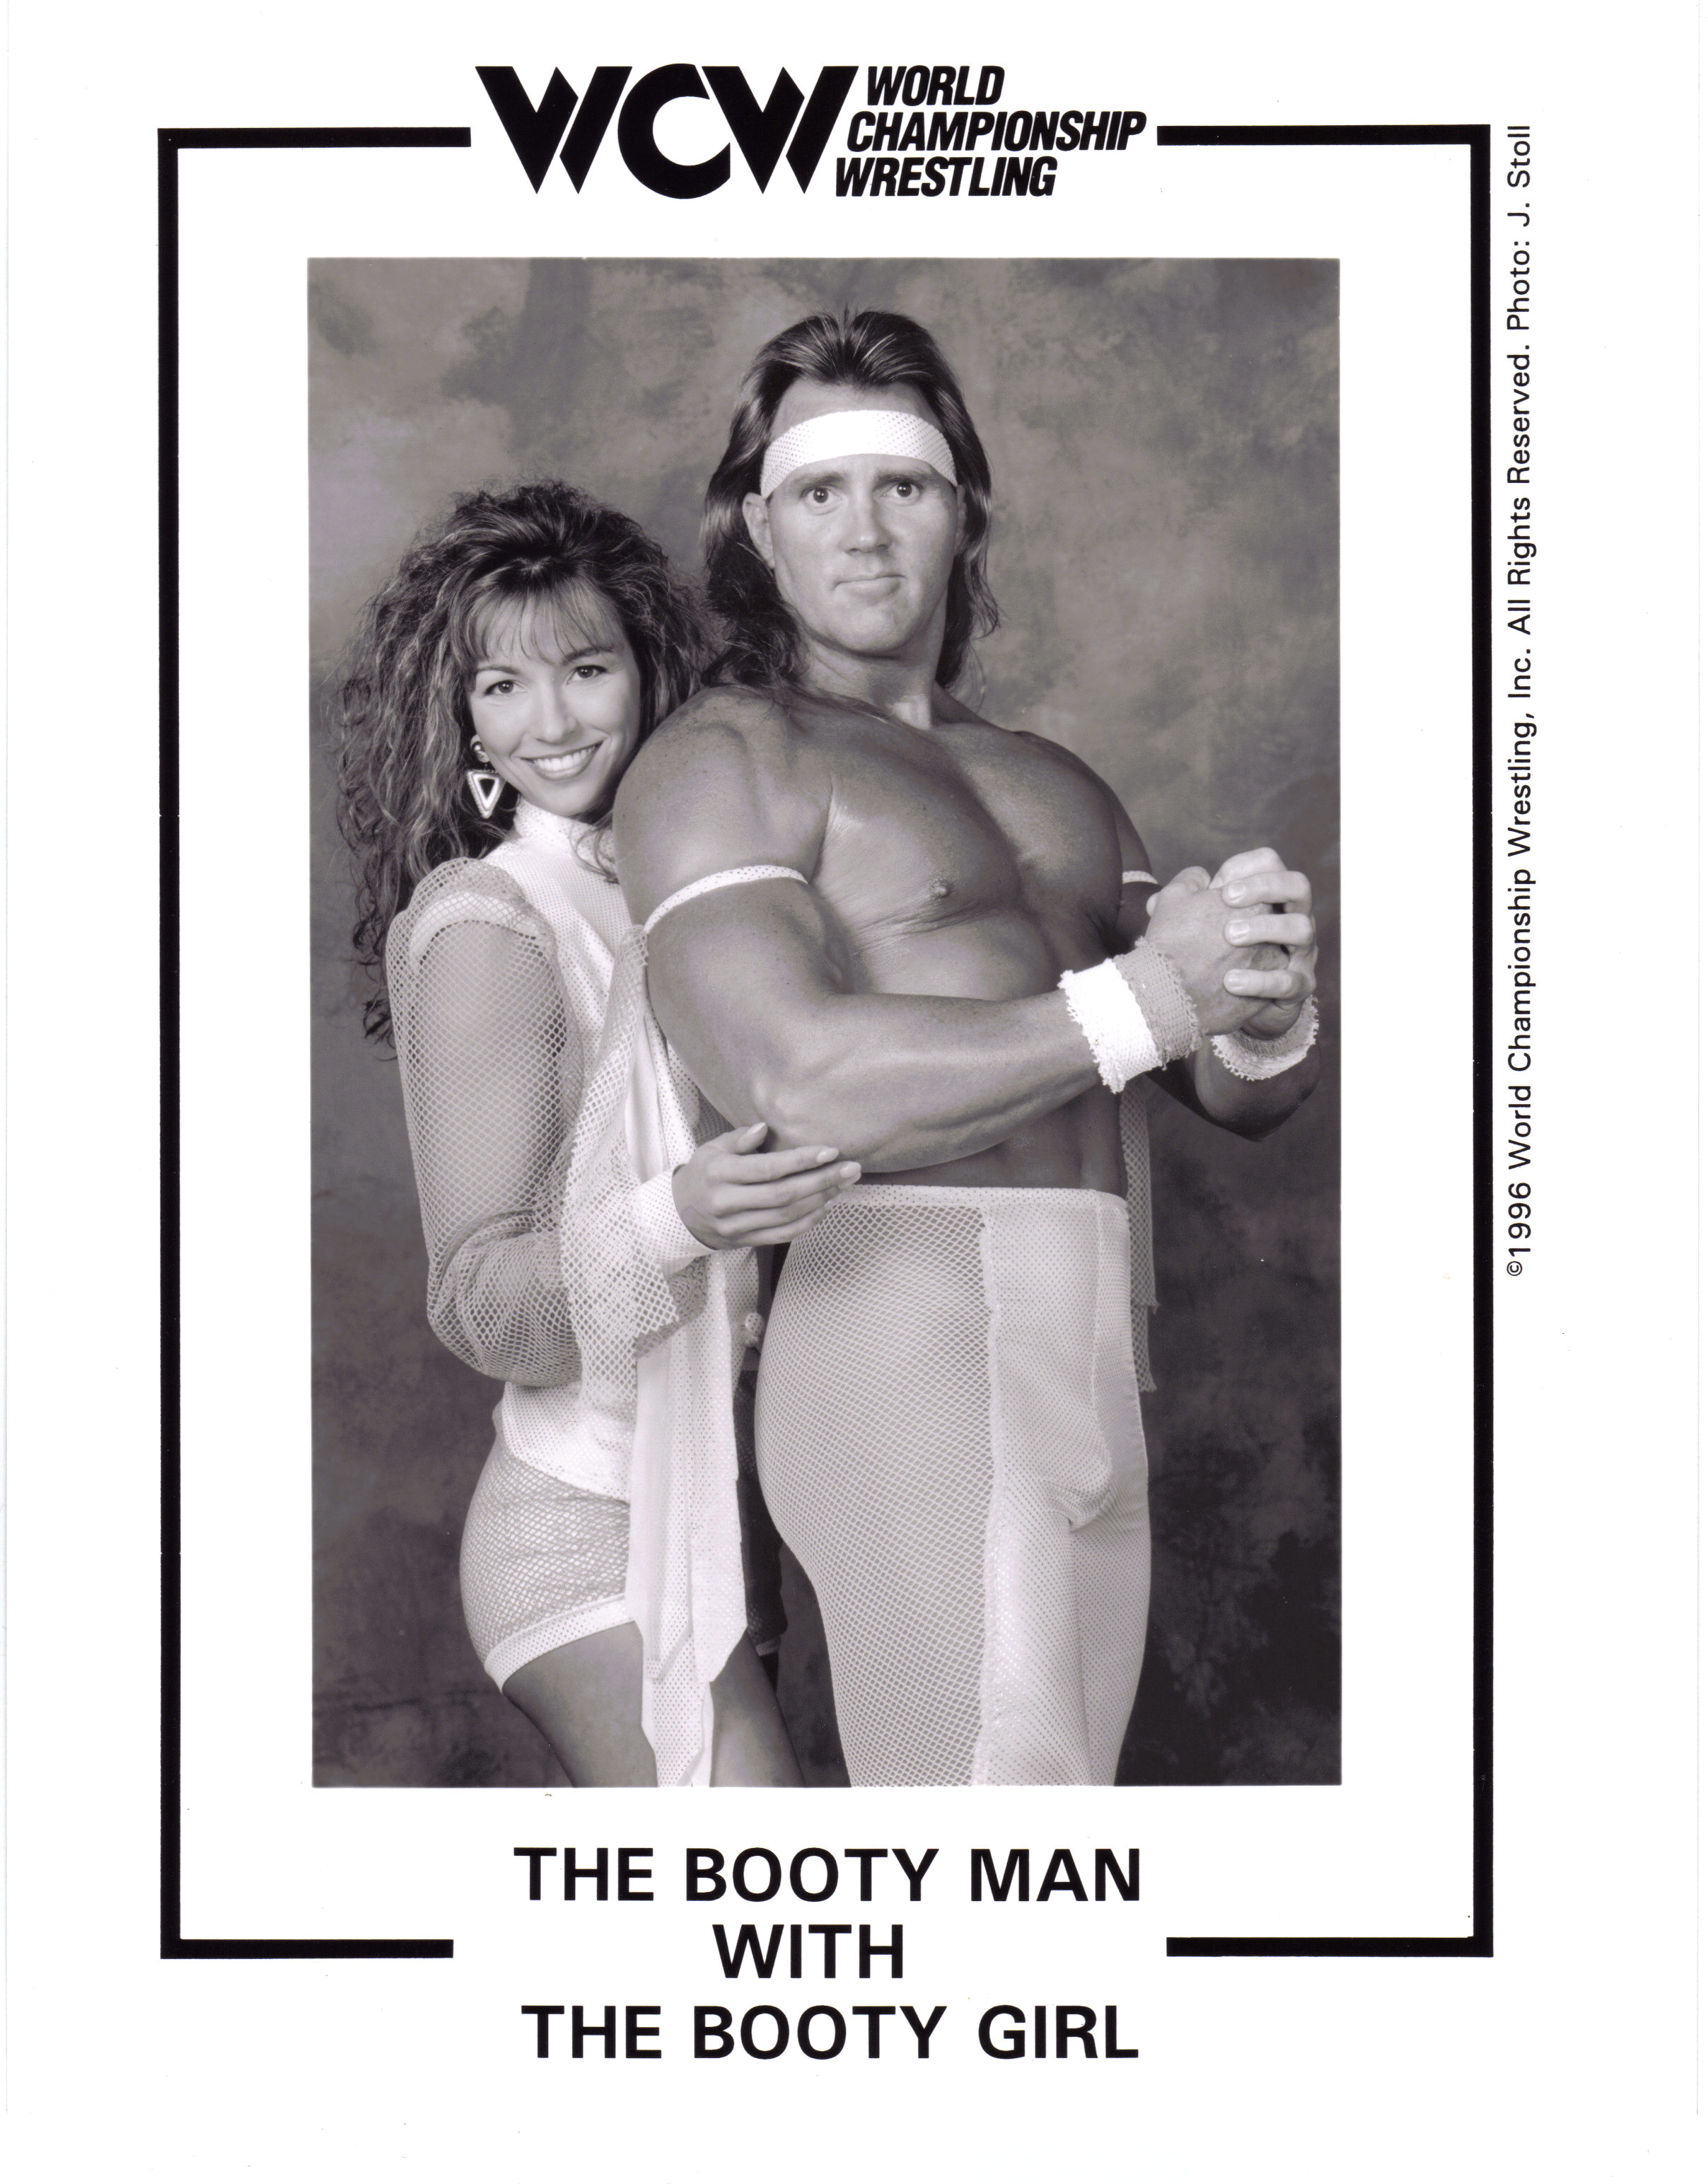 WCW The Booty Man and Booty Girl Kimberly Paige Ed Leslie 8x10 glossy promotional photo picture